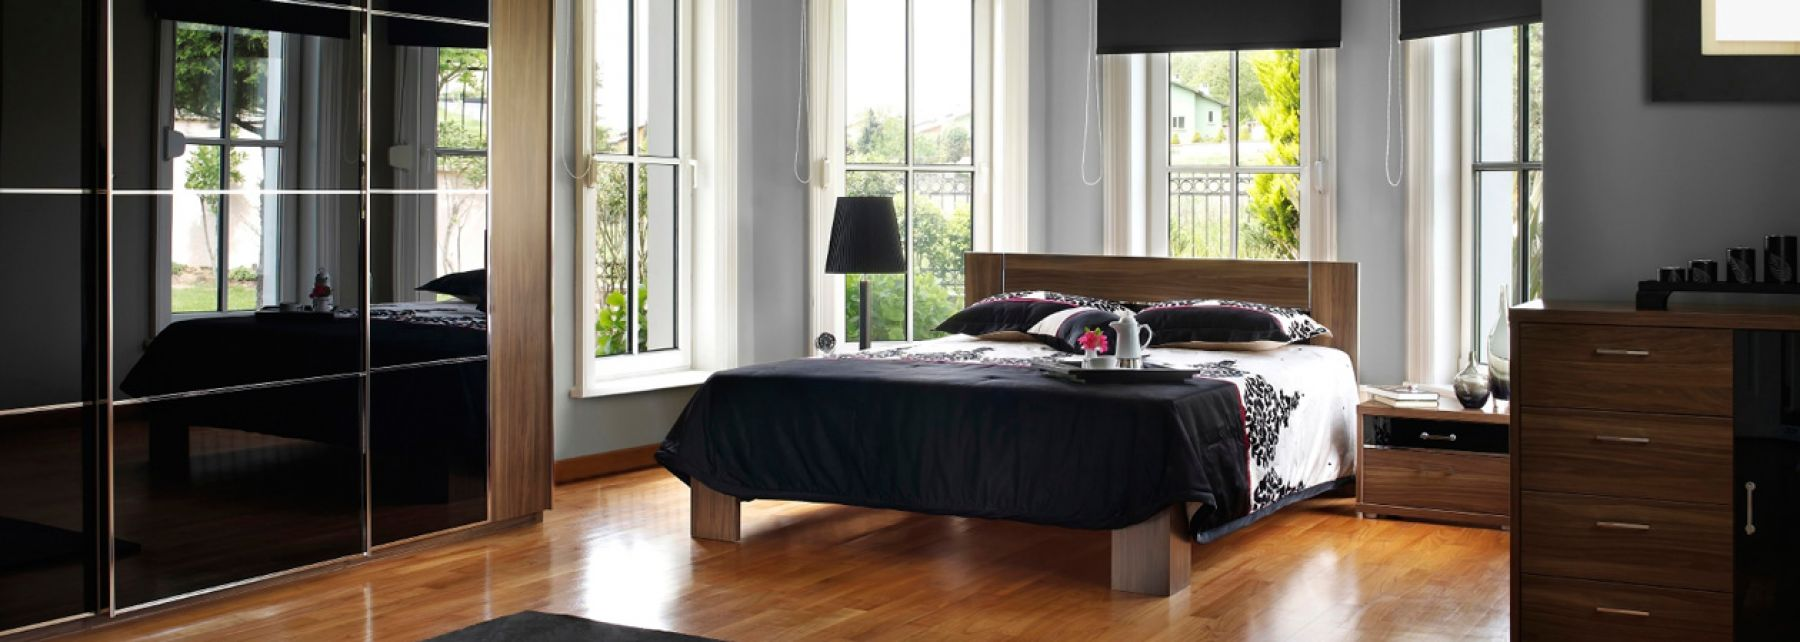 Chambres coucher cuisines alpin for Meuble chambre a coucher montreal